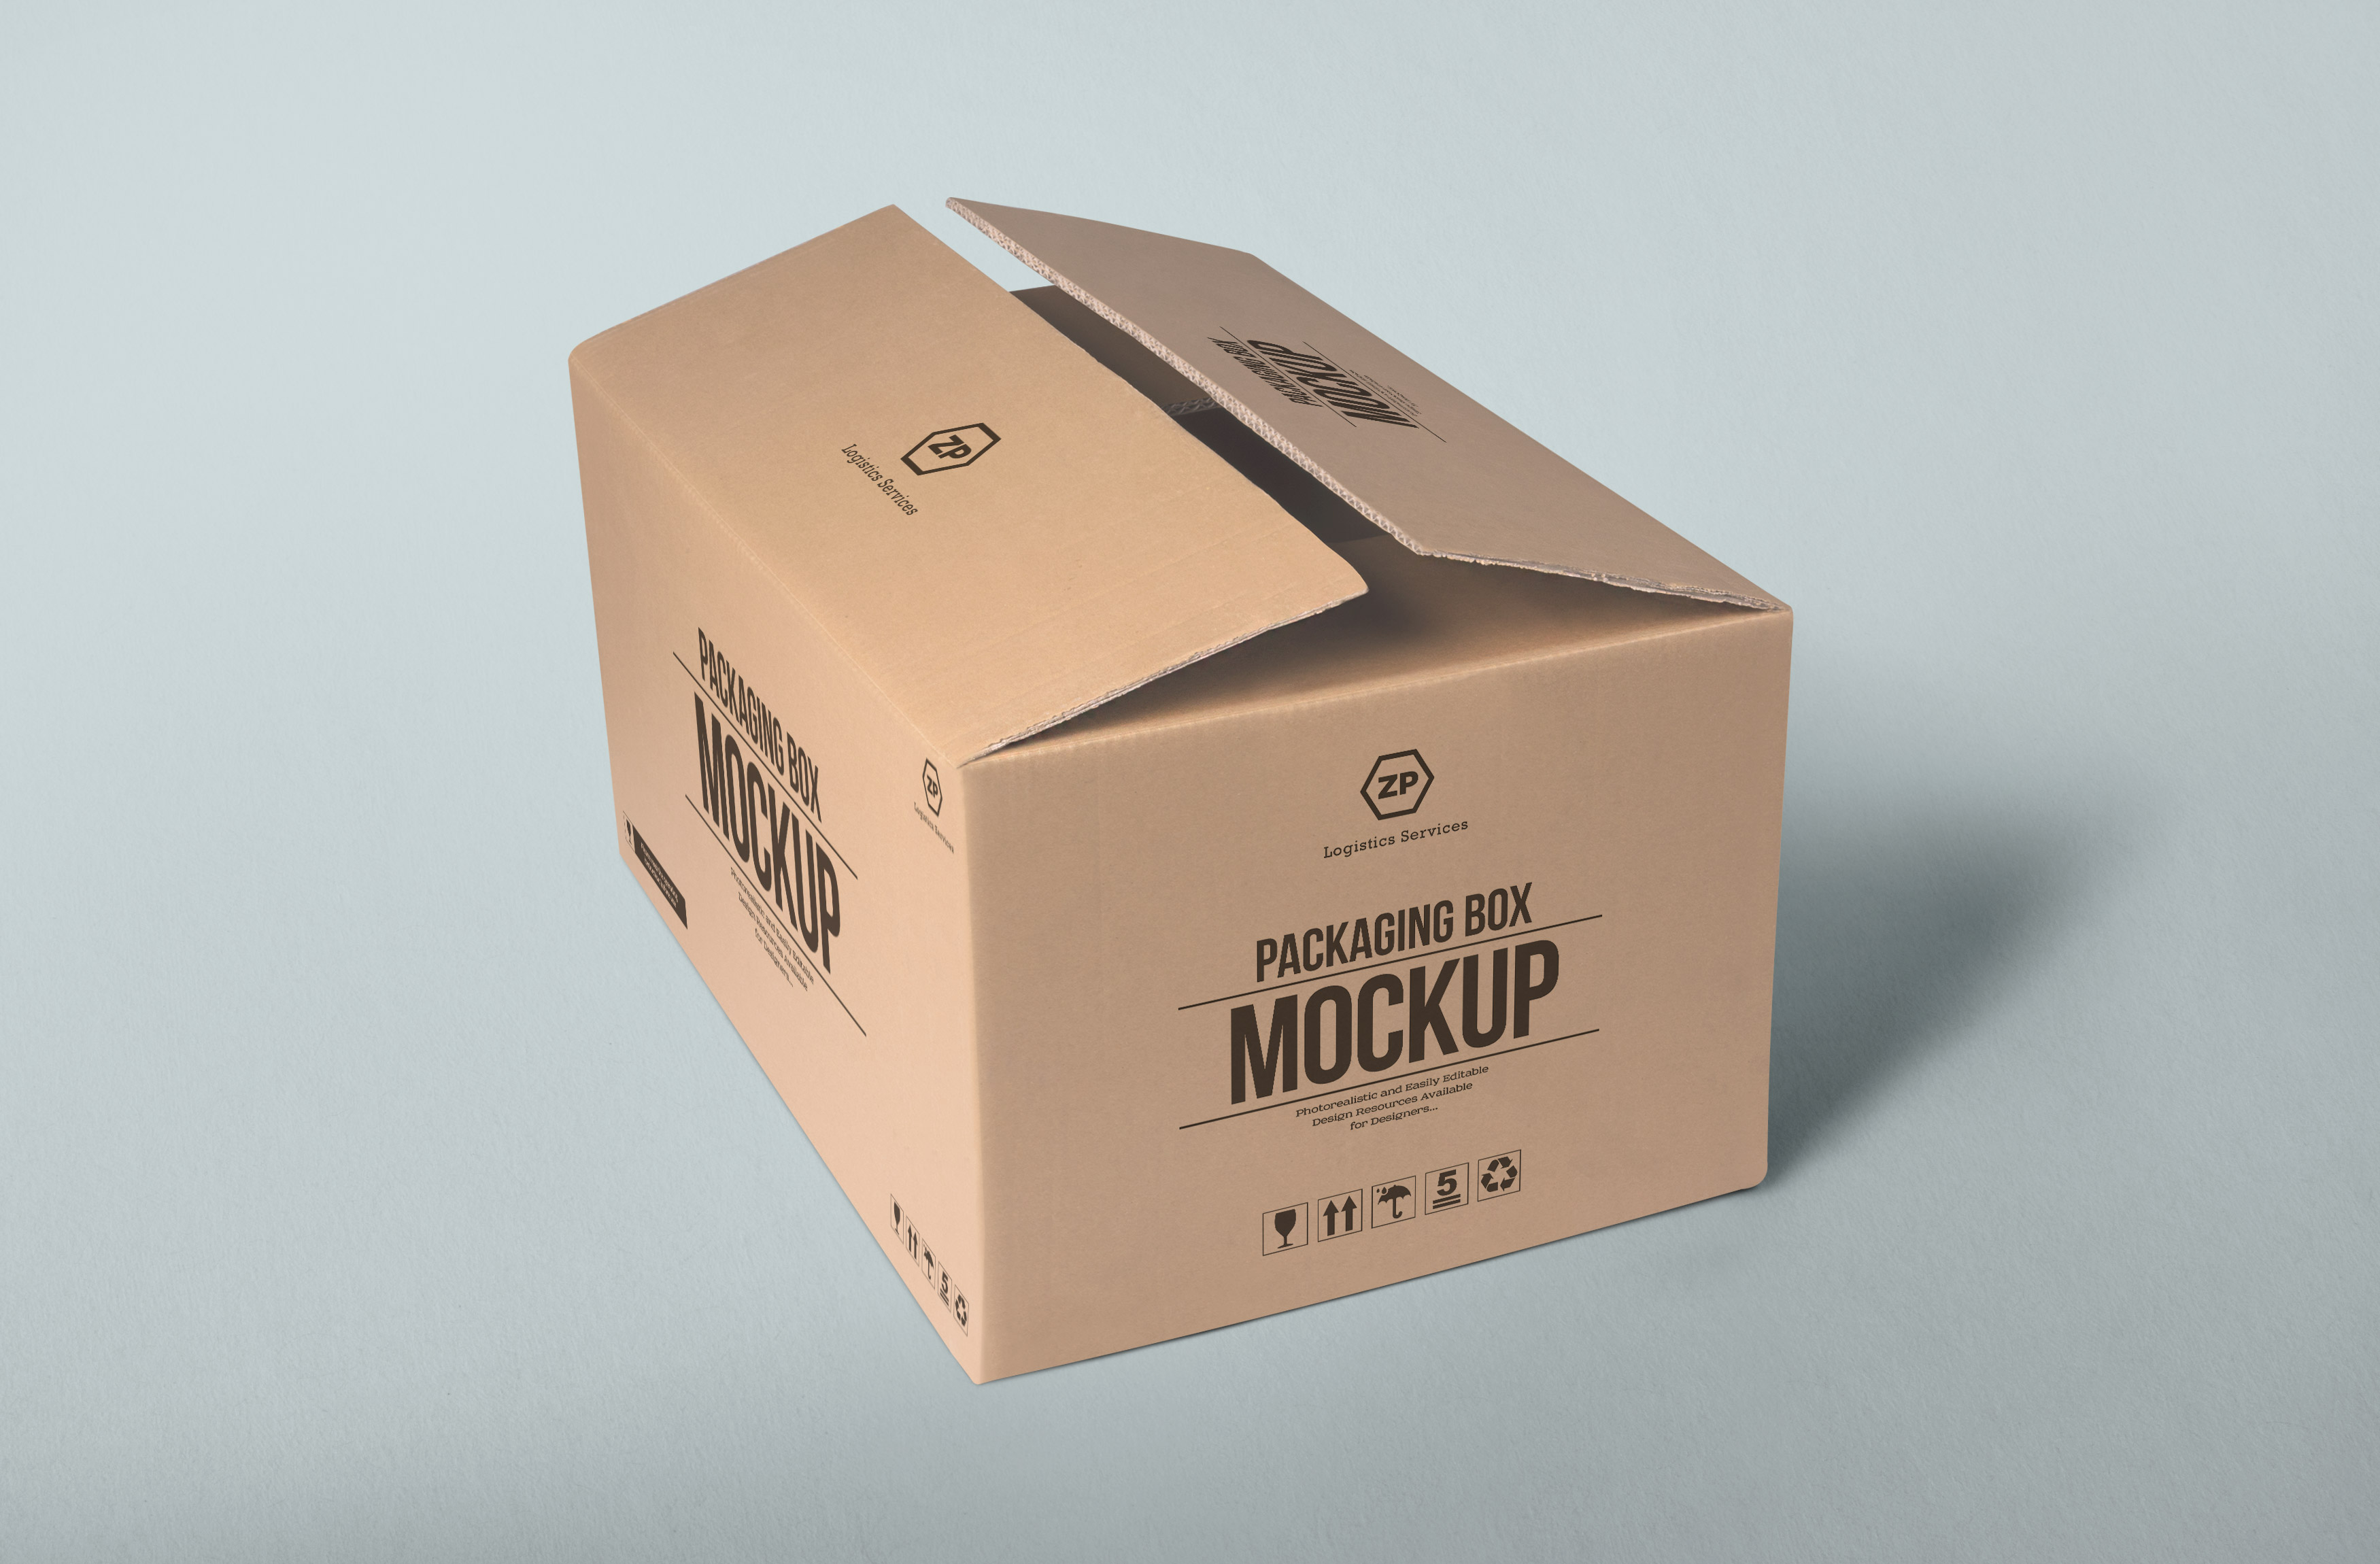 packaging-box-mockup-bonus-5.jpg